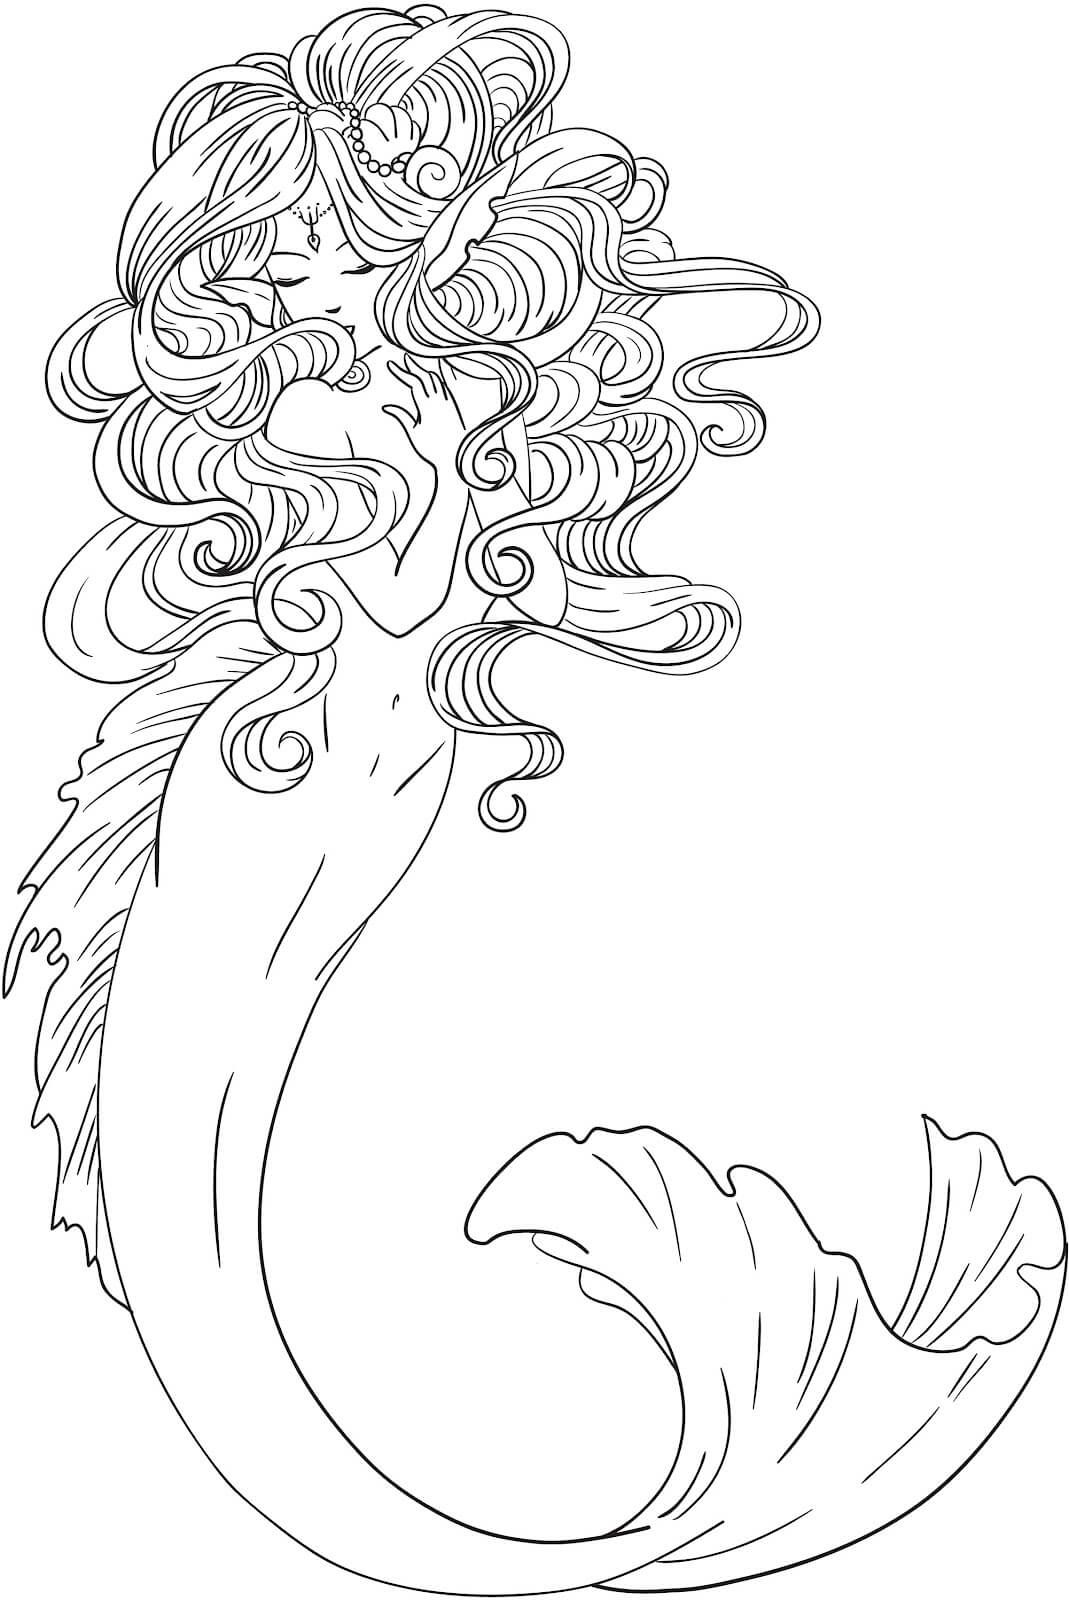 Adult Coloring Pages Mermaids Free Coloring Page Coloring Pages